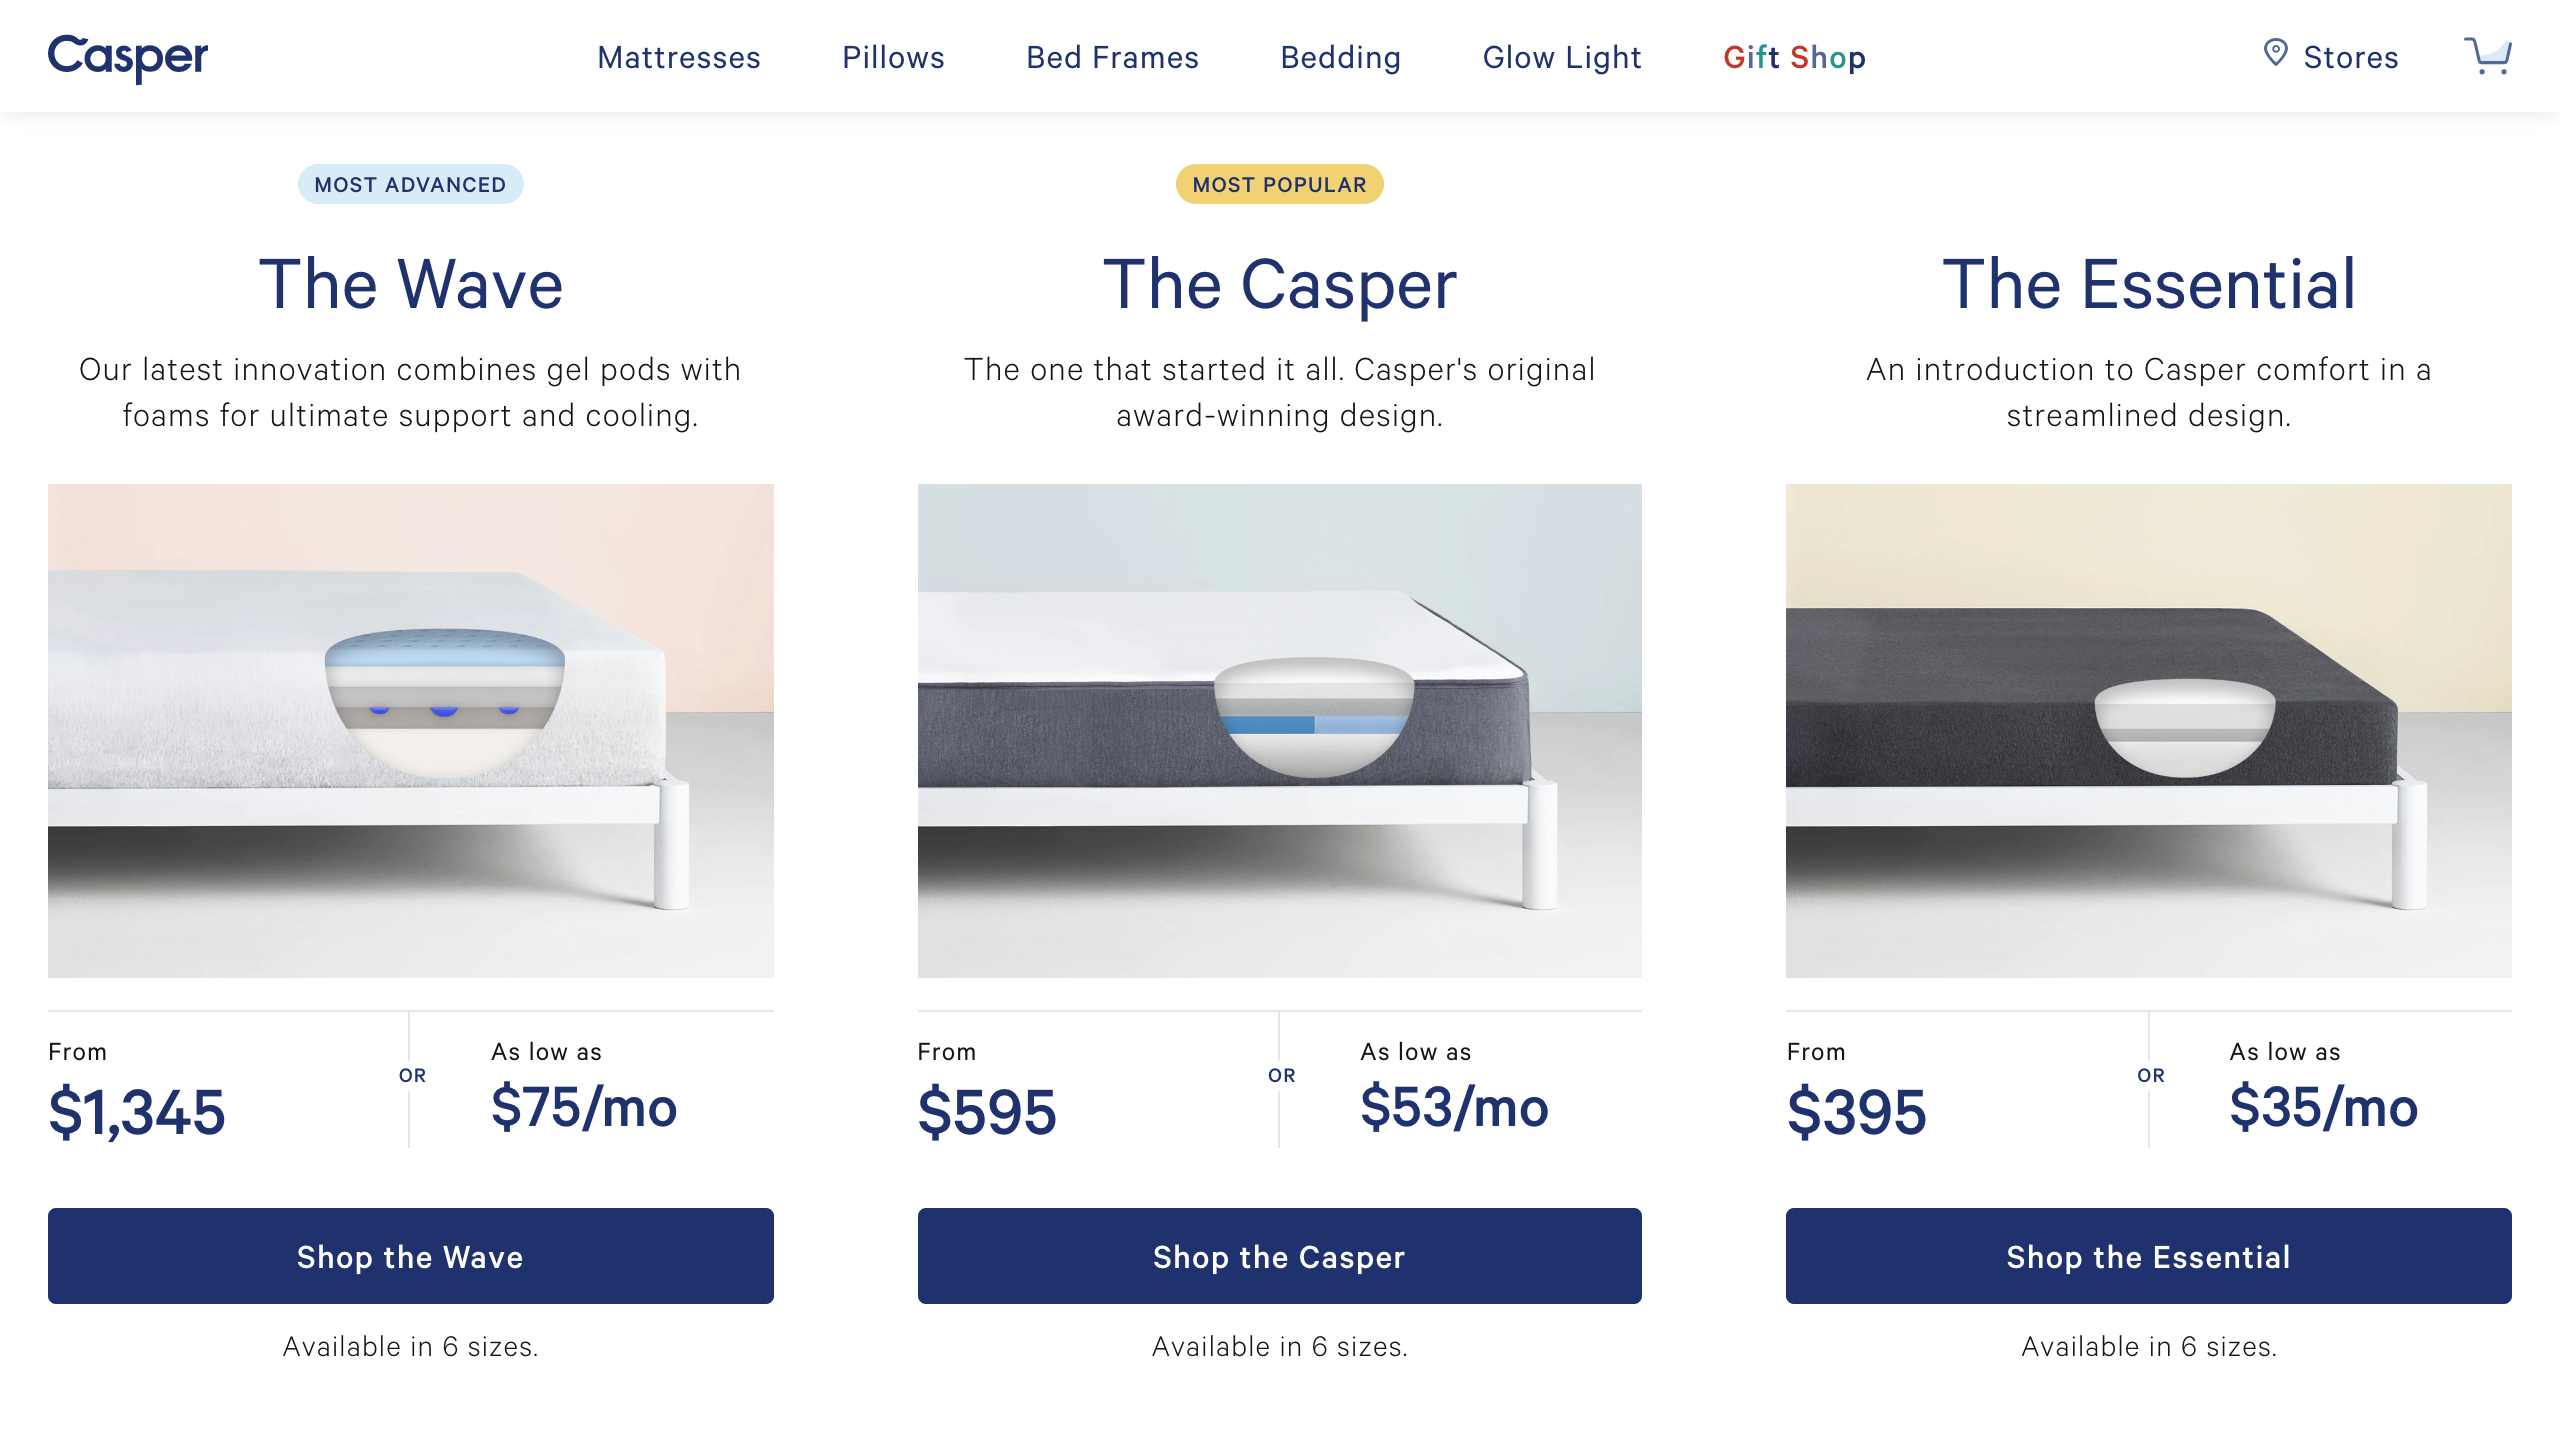 The Top Ecommerce Trends You Need to Know About for 2020